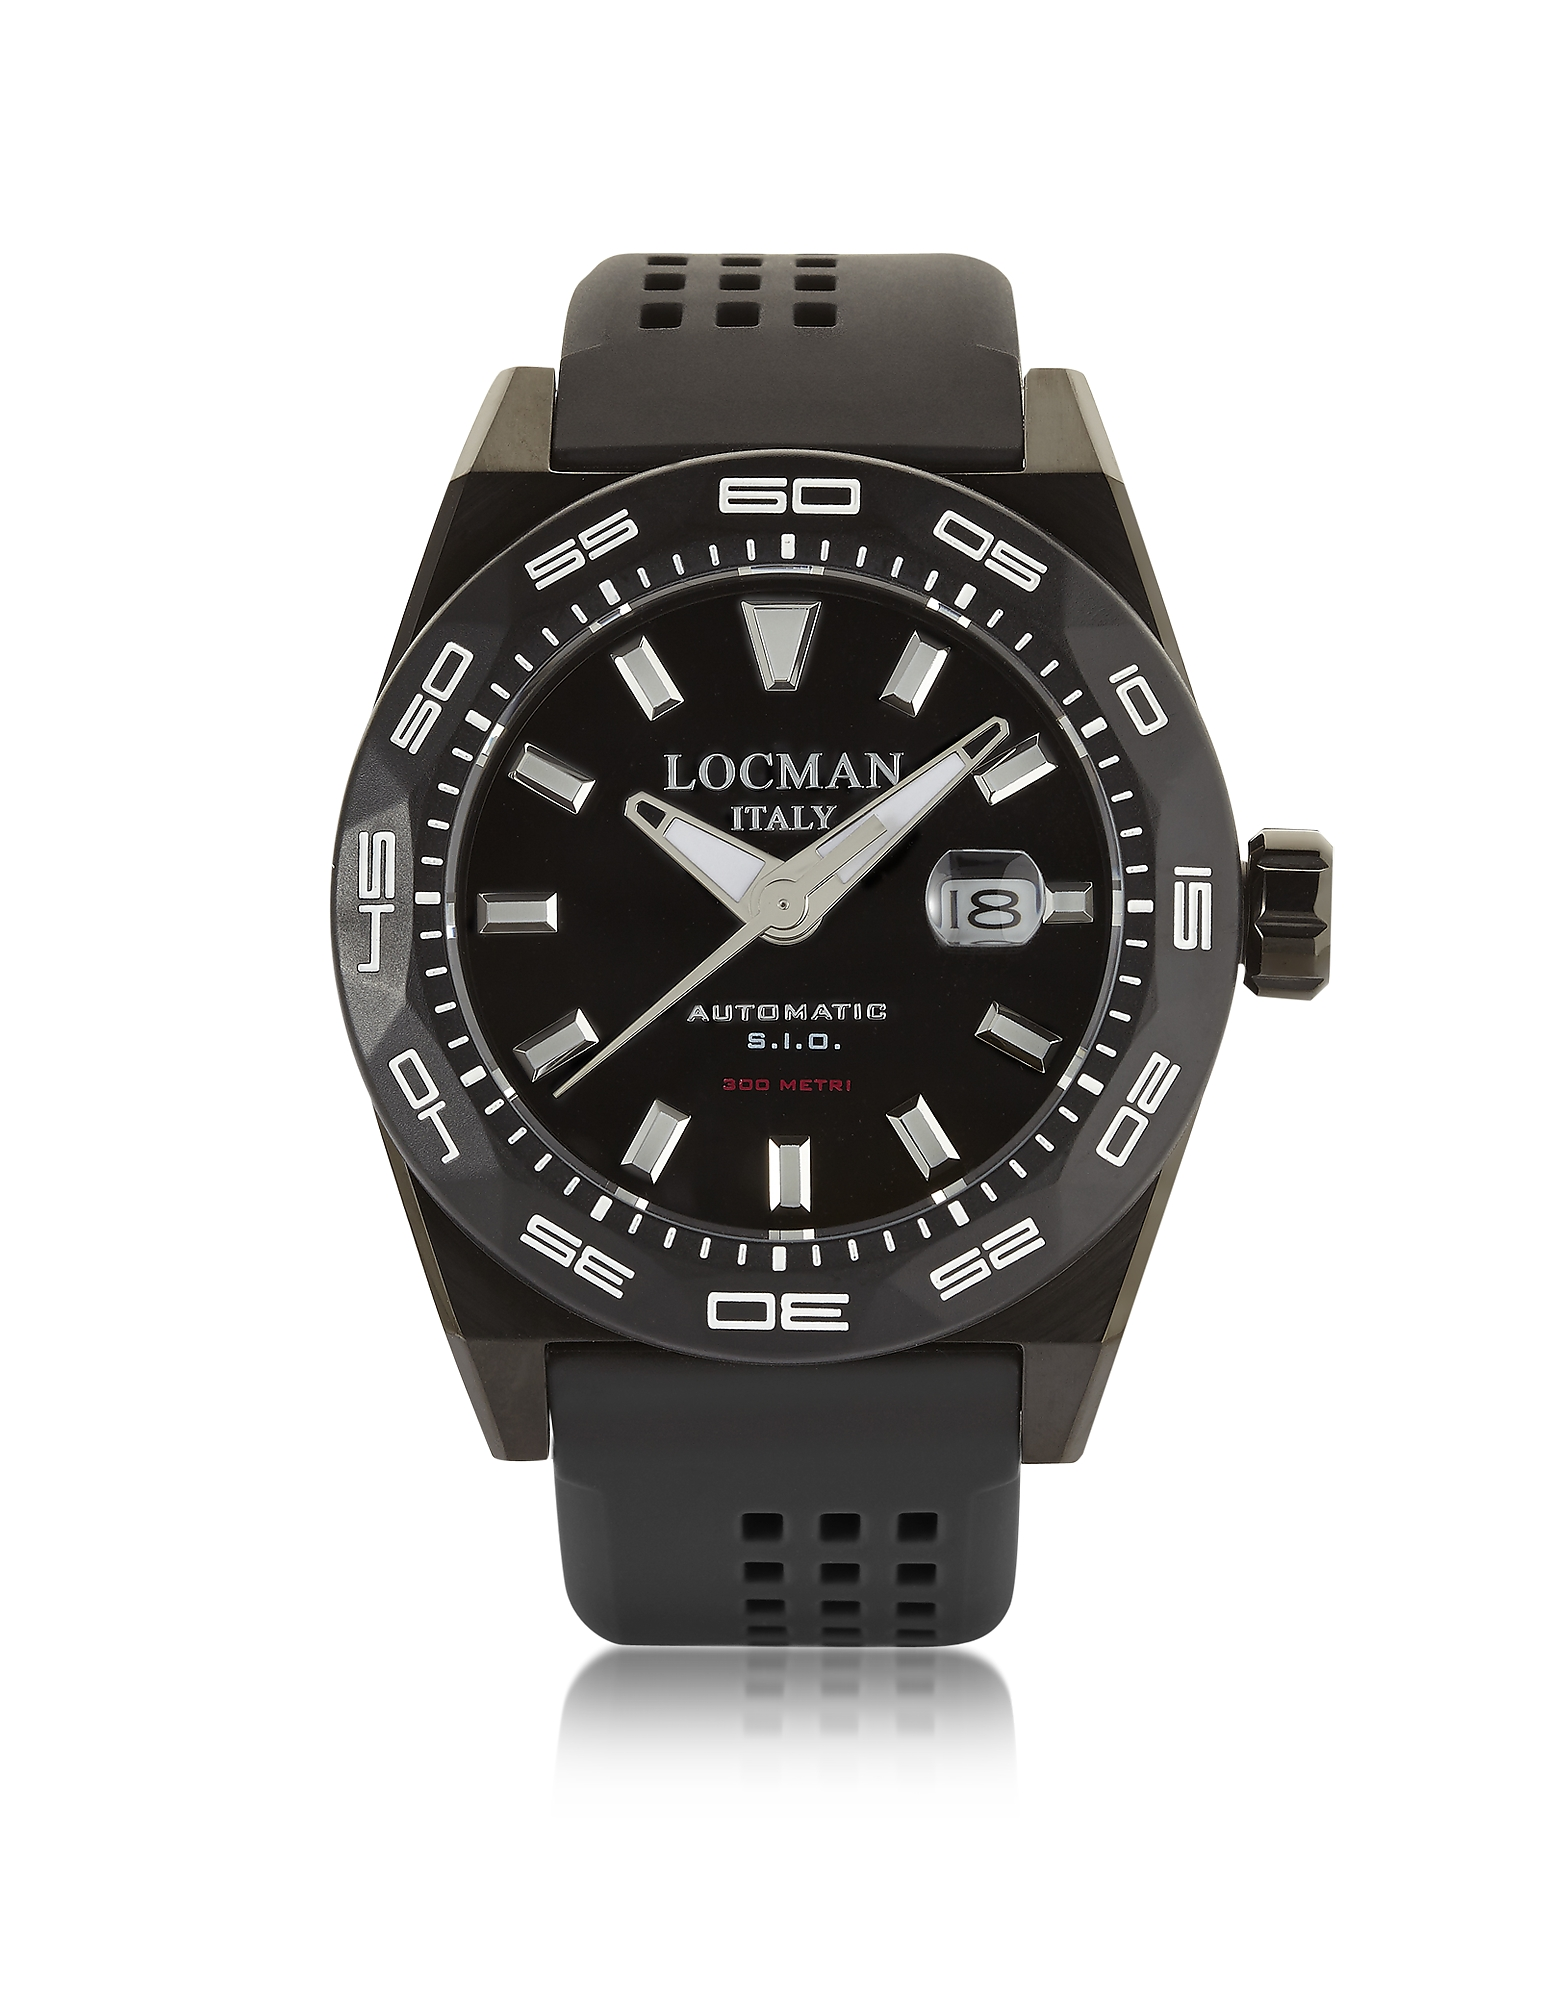 Locman Men's Watches, Stealth 300 mt Analog Display Automatic Self Wind Black PVD Stainless Steel, T